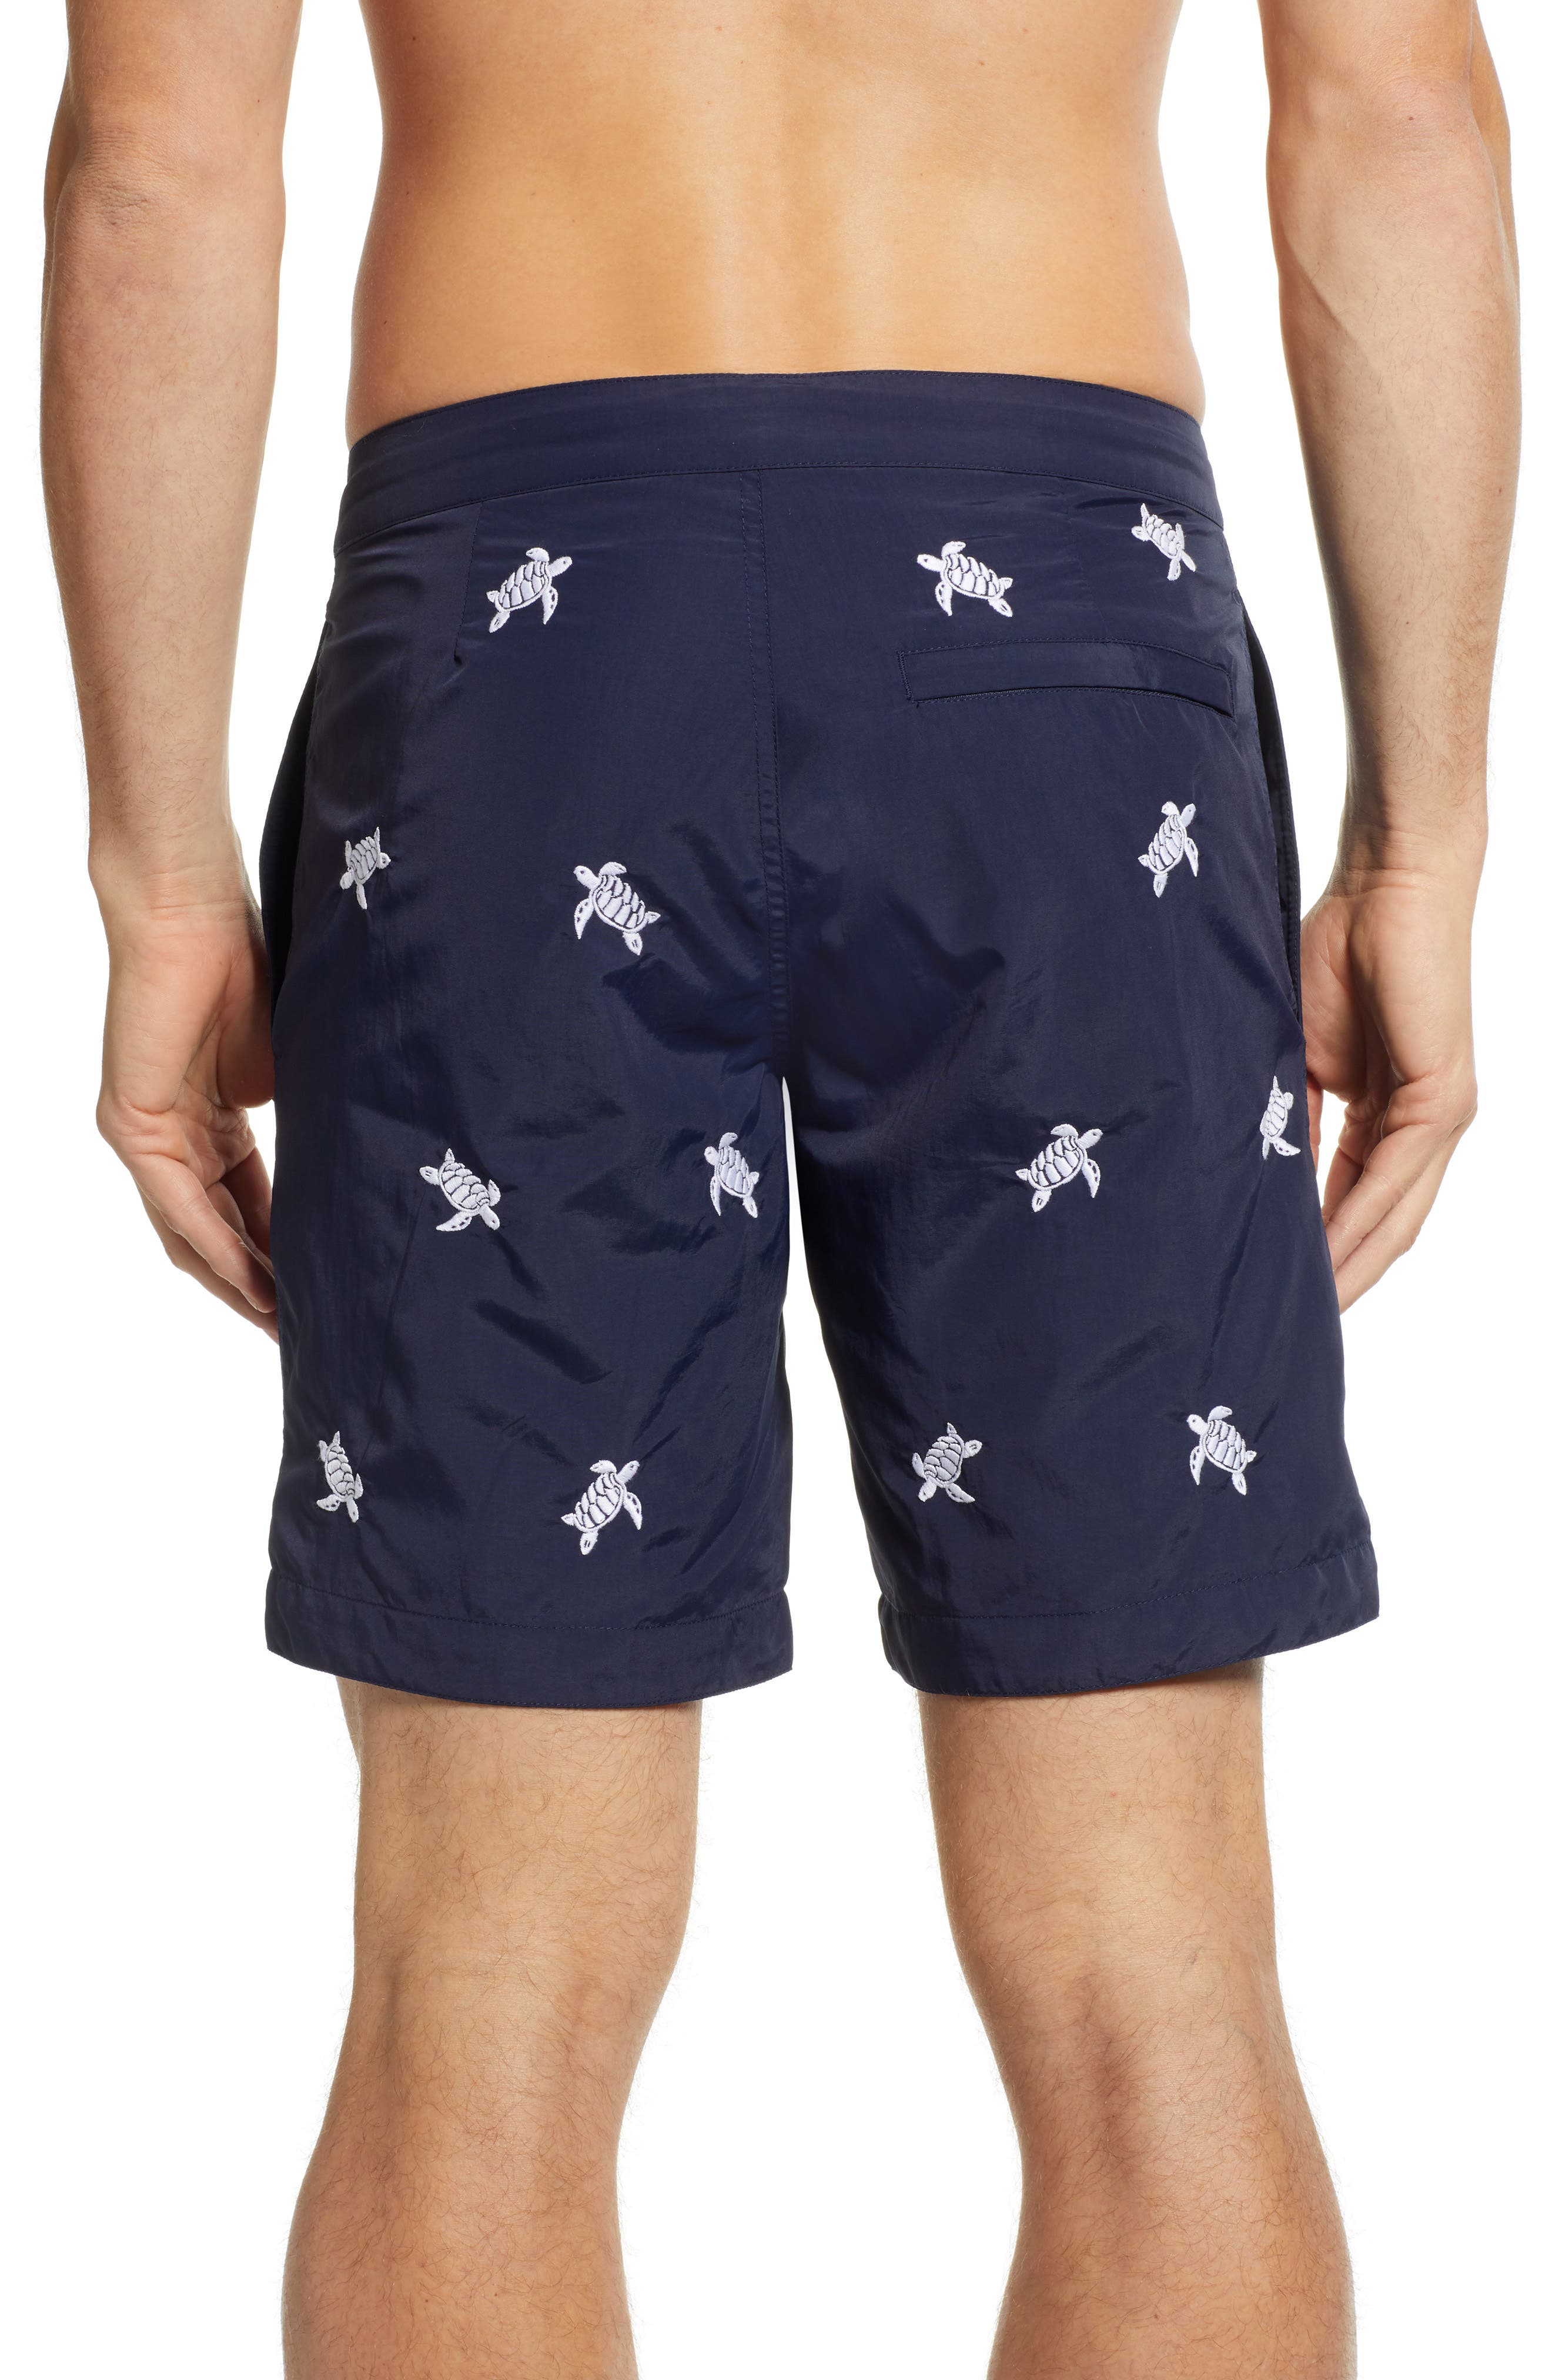 Aruba Embroidered 8.5 Inch Swim Trunks,                             Alternate thumbnail 2, color,                             NAVY EMBROIDERED TURTLES